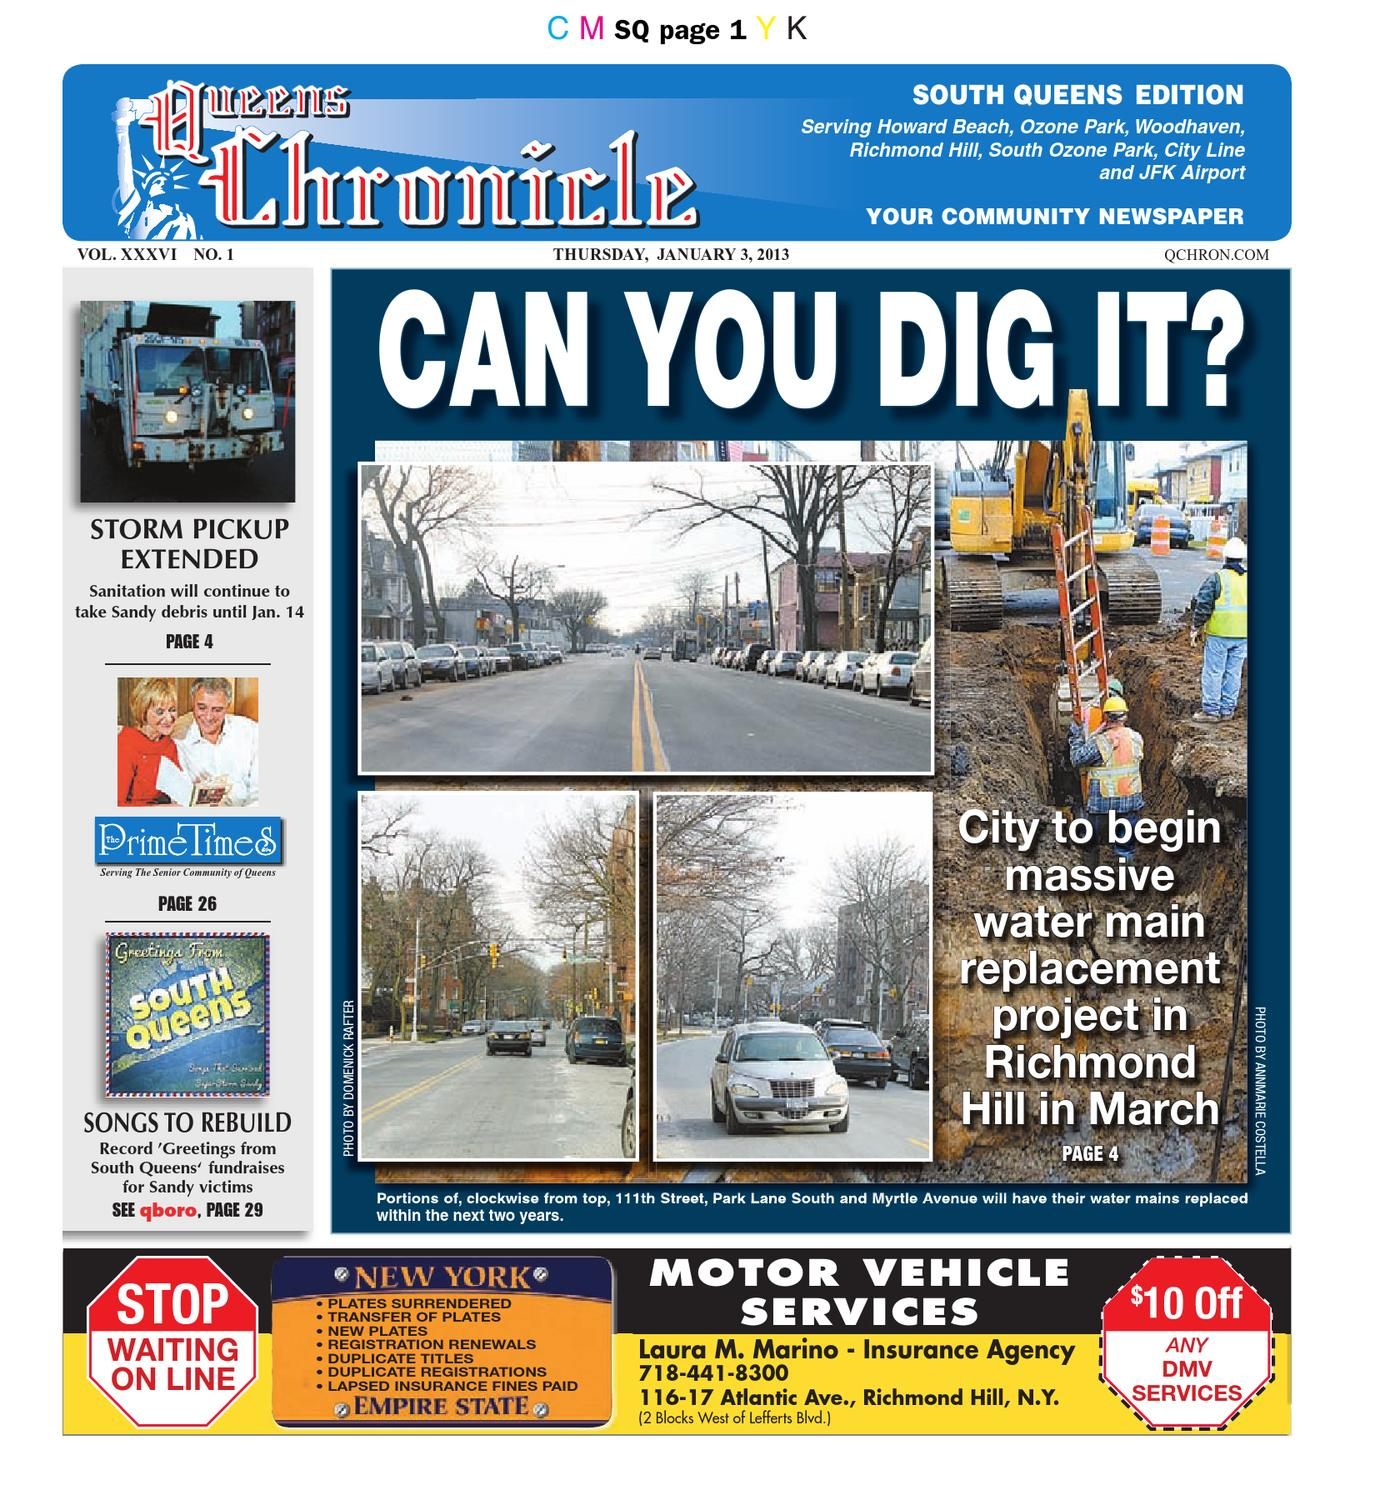 Queens Chronicle South Edition 01-03-13